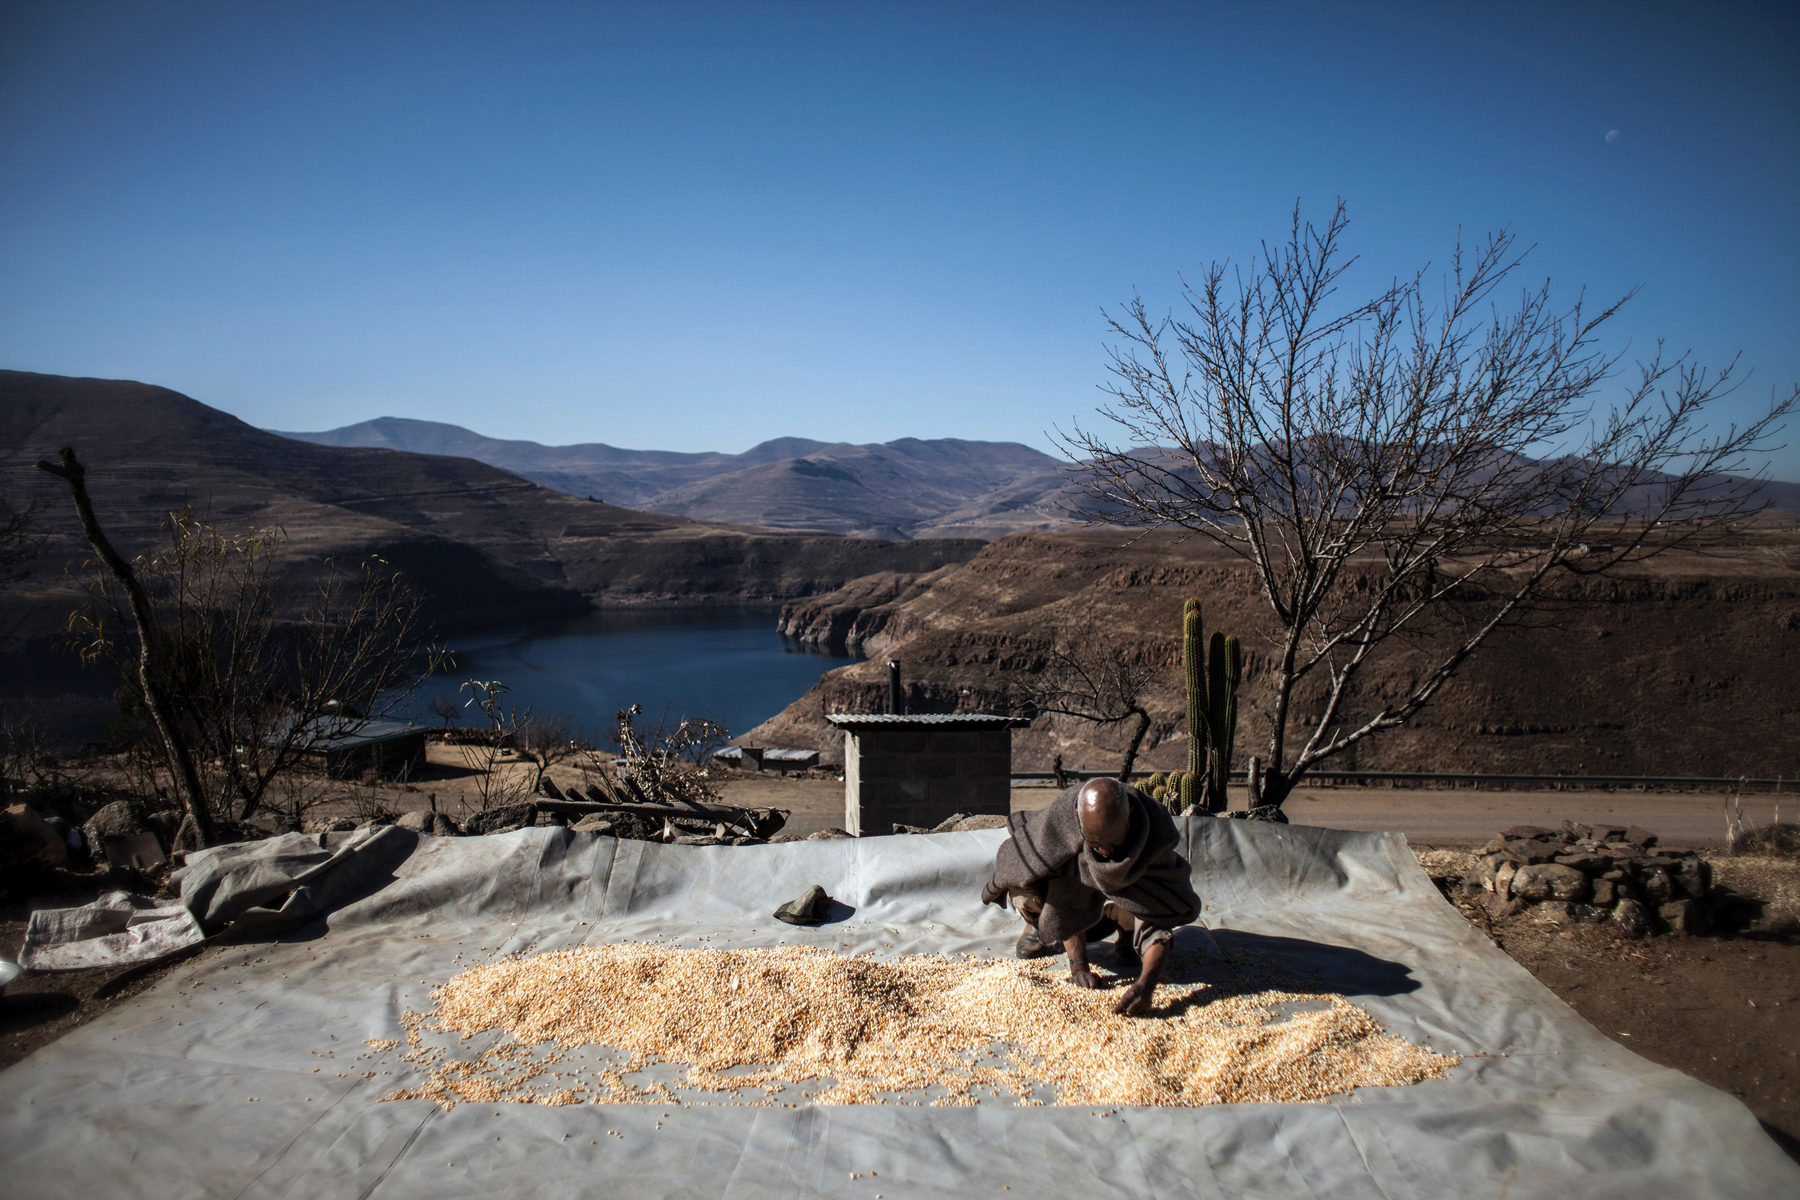 Mohlakoana Molise, a farmer in Lesotho, sorts the yield from his maize crop. Like much of Africa, Lesotho has been hit hard in 2016 by a drought associated with a strong El Niño event.